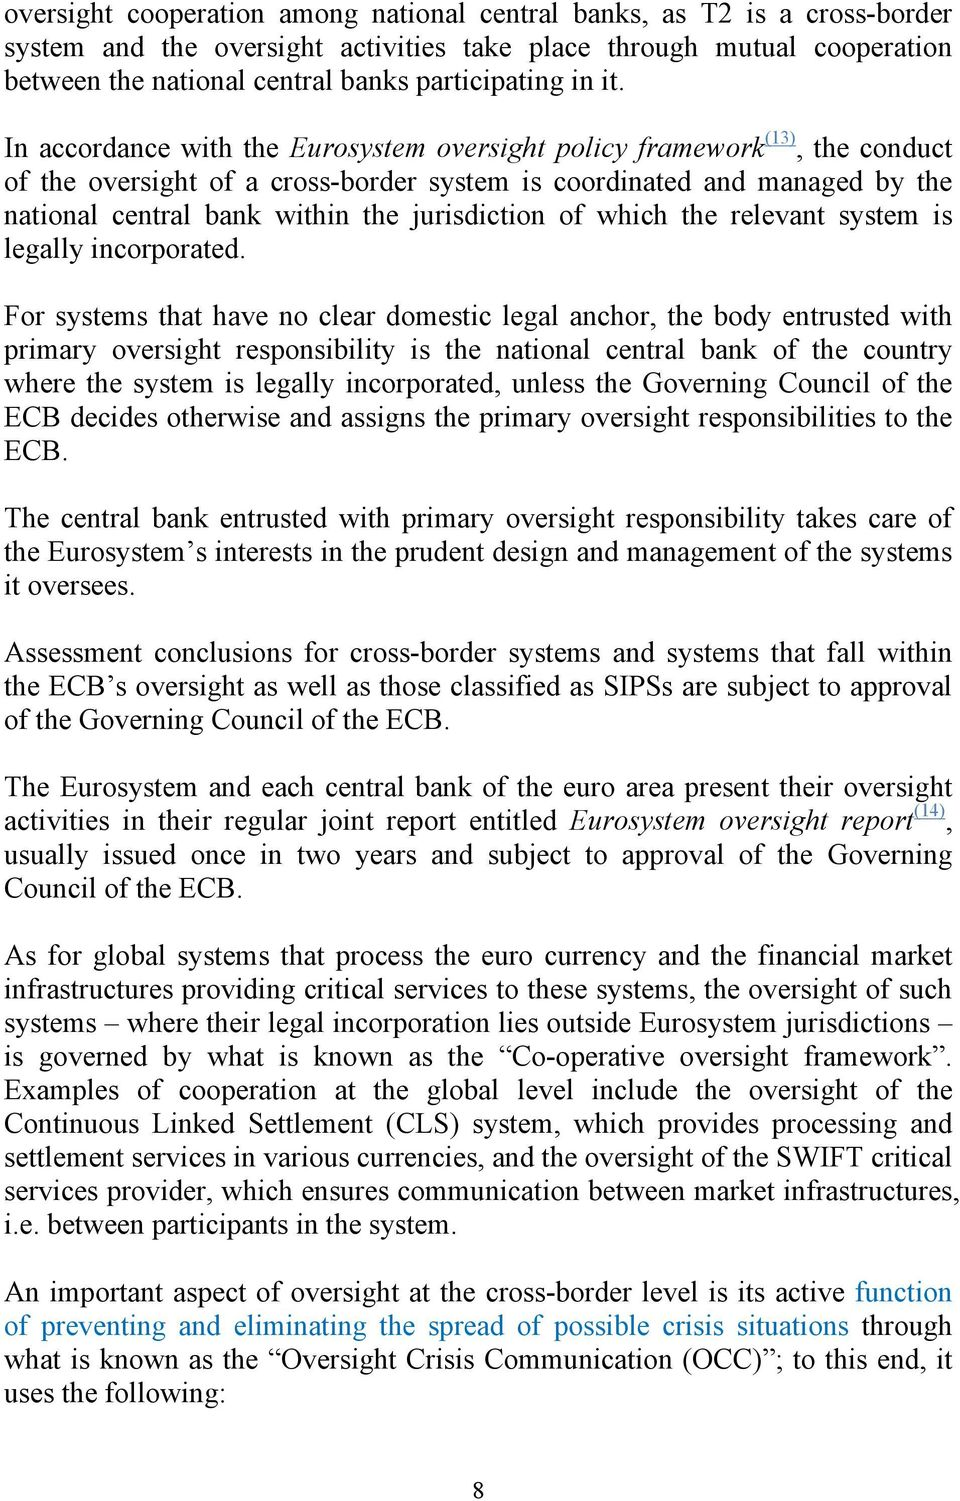 In accordance with the Eurosystem oversight policy framework (13), the conduct of the oversight of a cross-border system is coordinated and managed by the national central bank within the